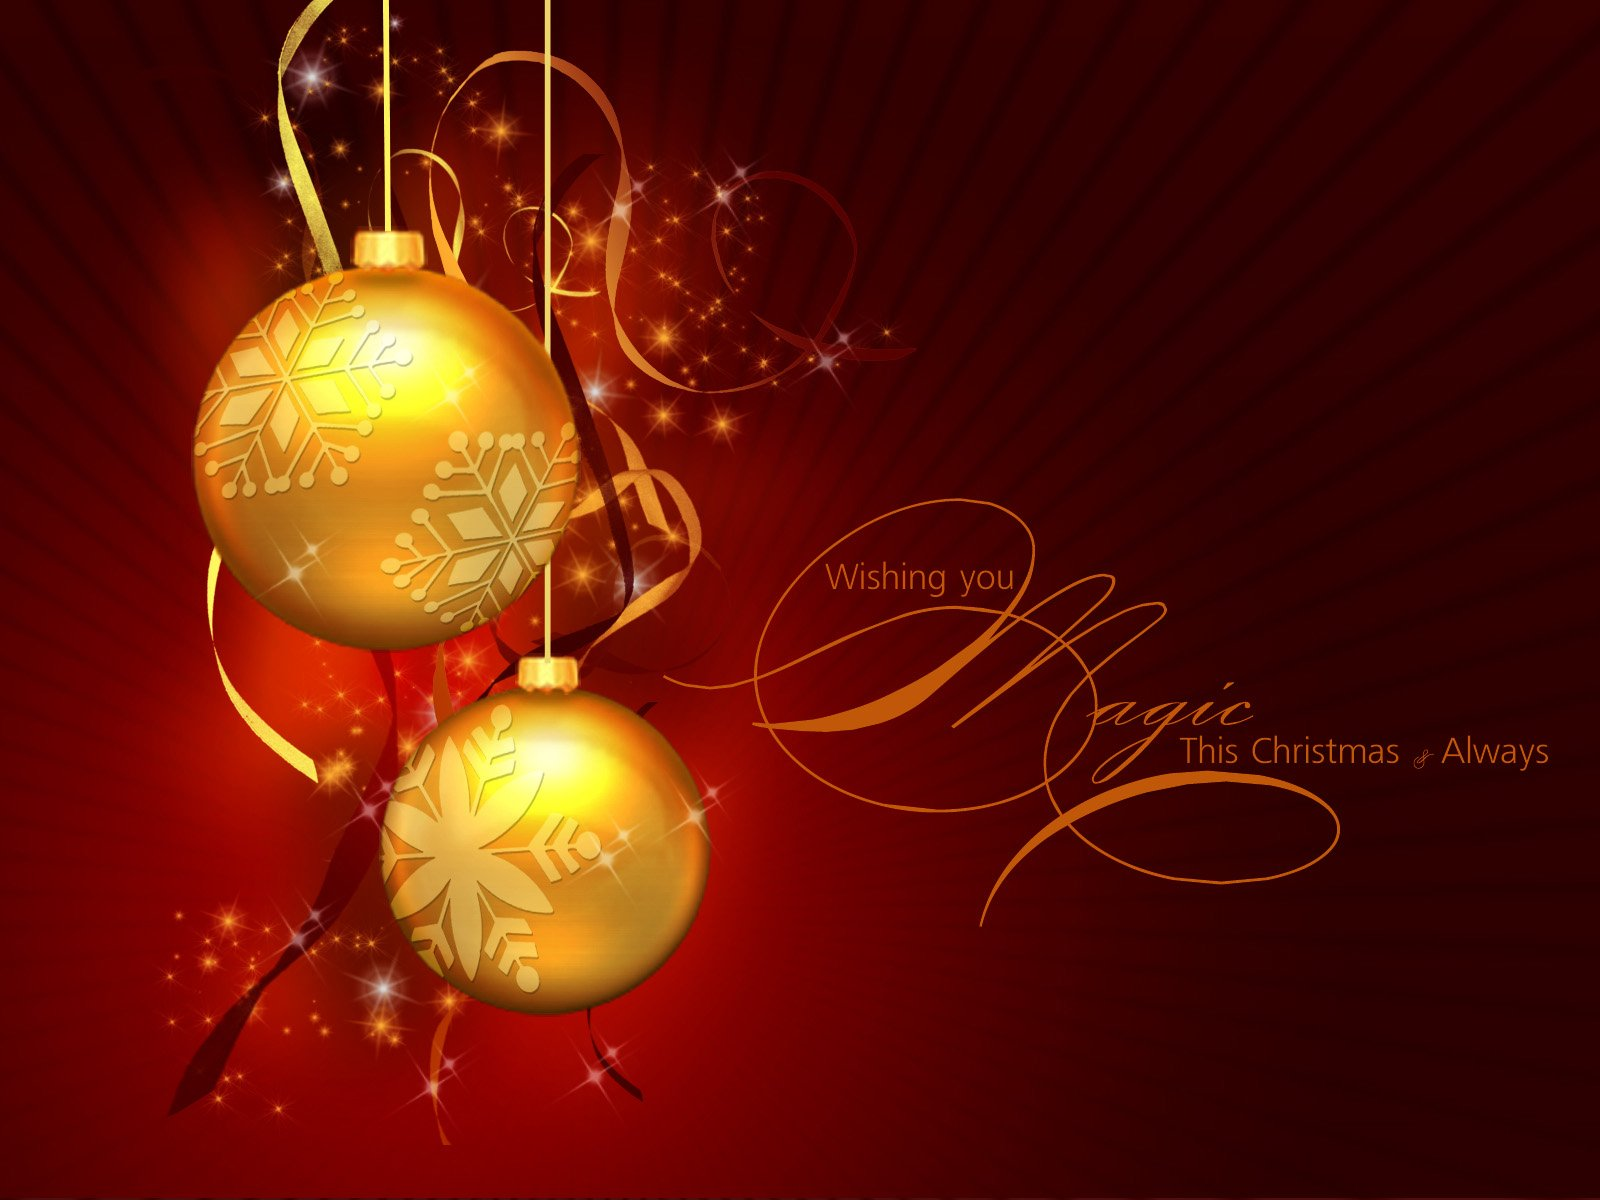 wallpaper merry christmas wallpapers christmas wallpapers 1600x1200